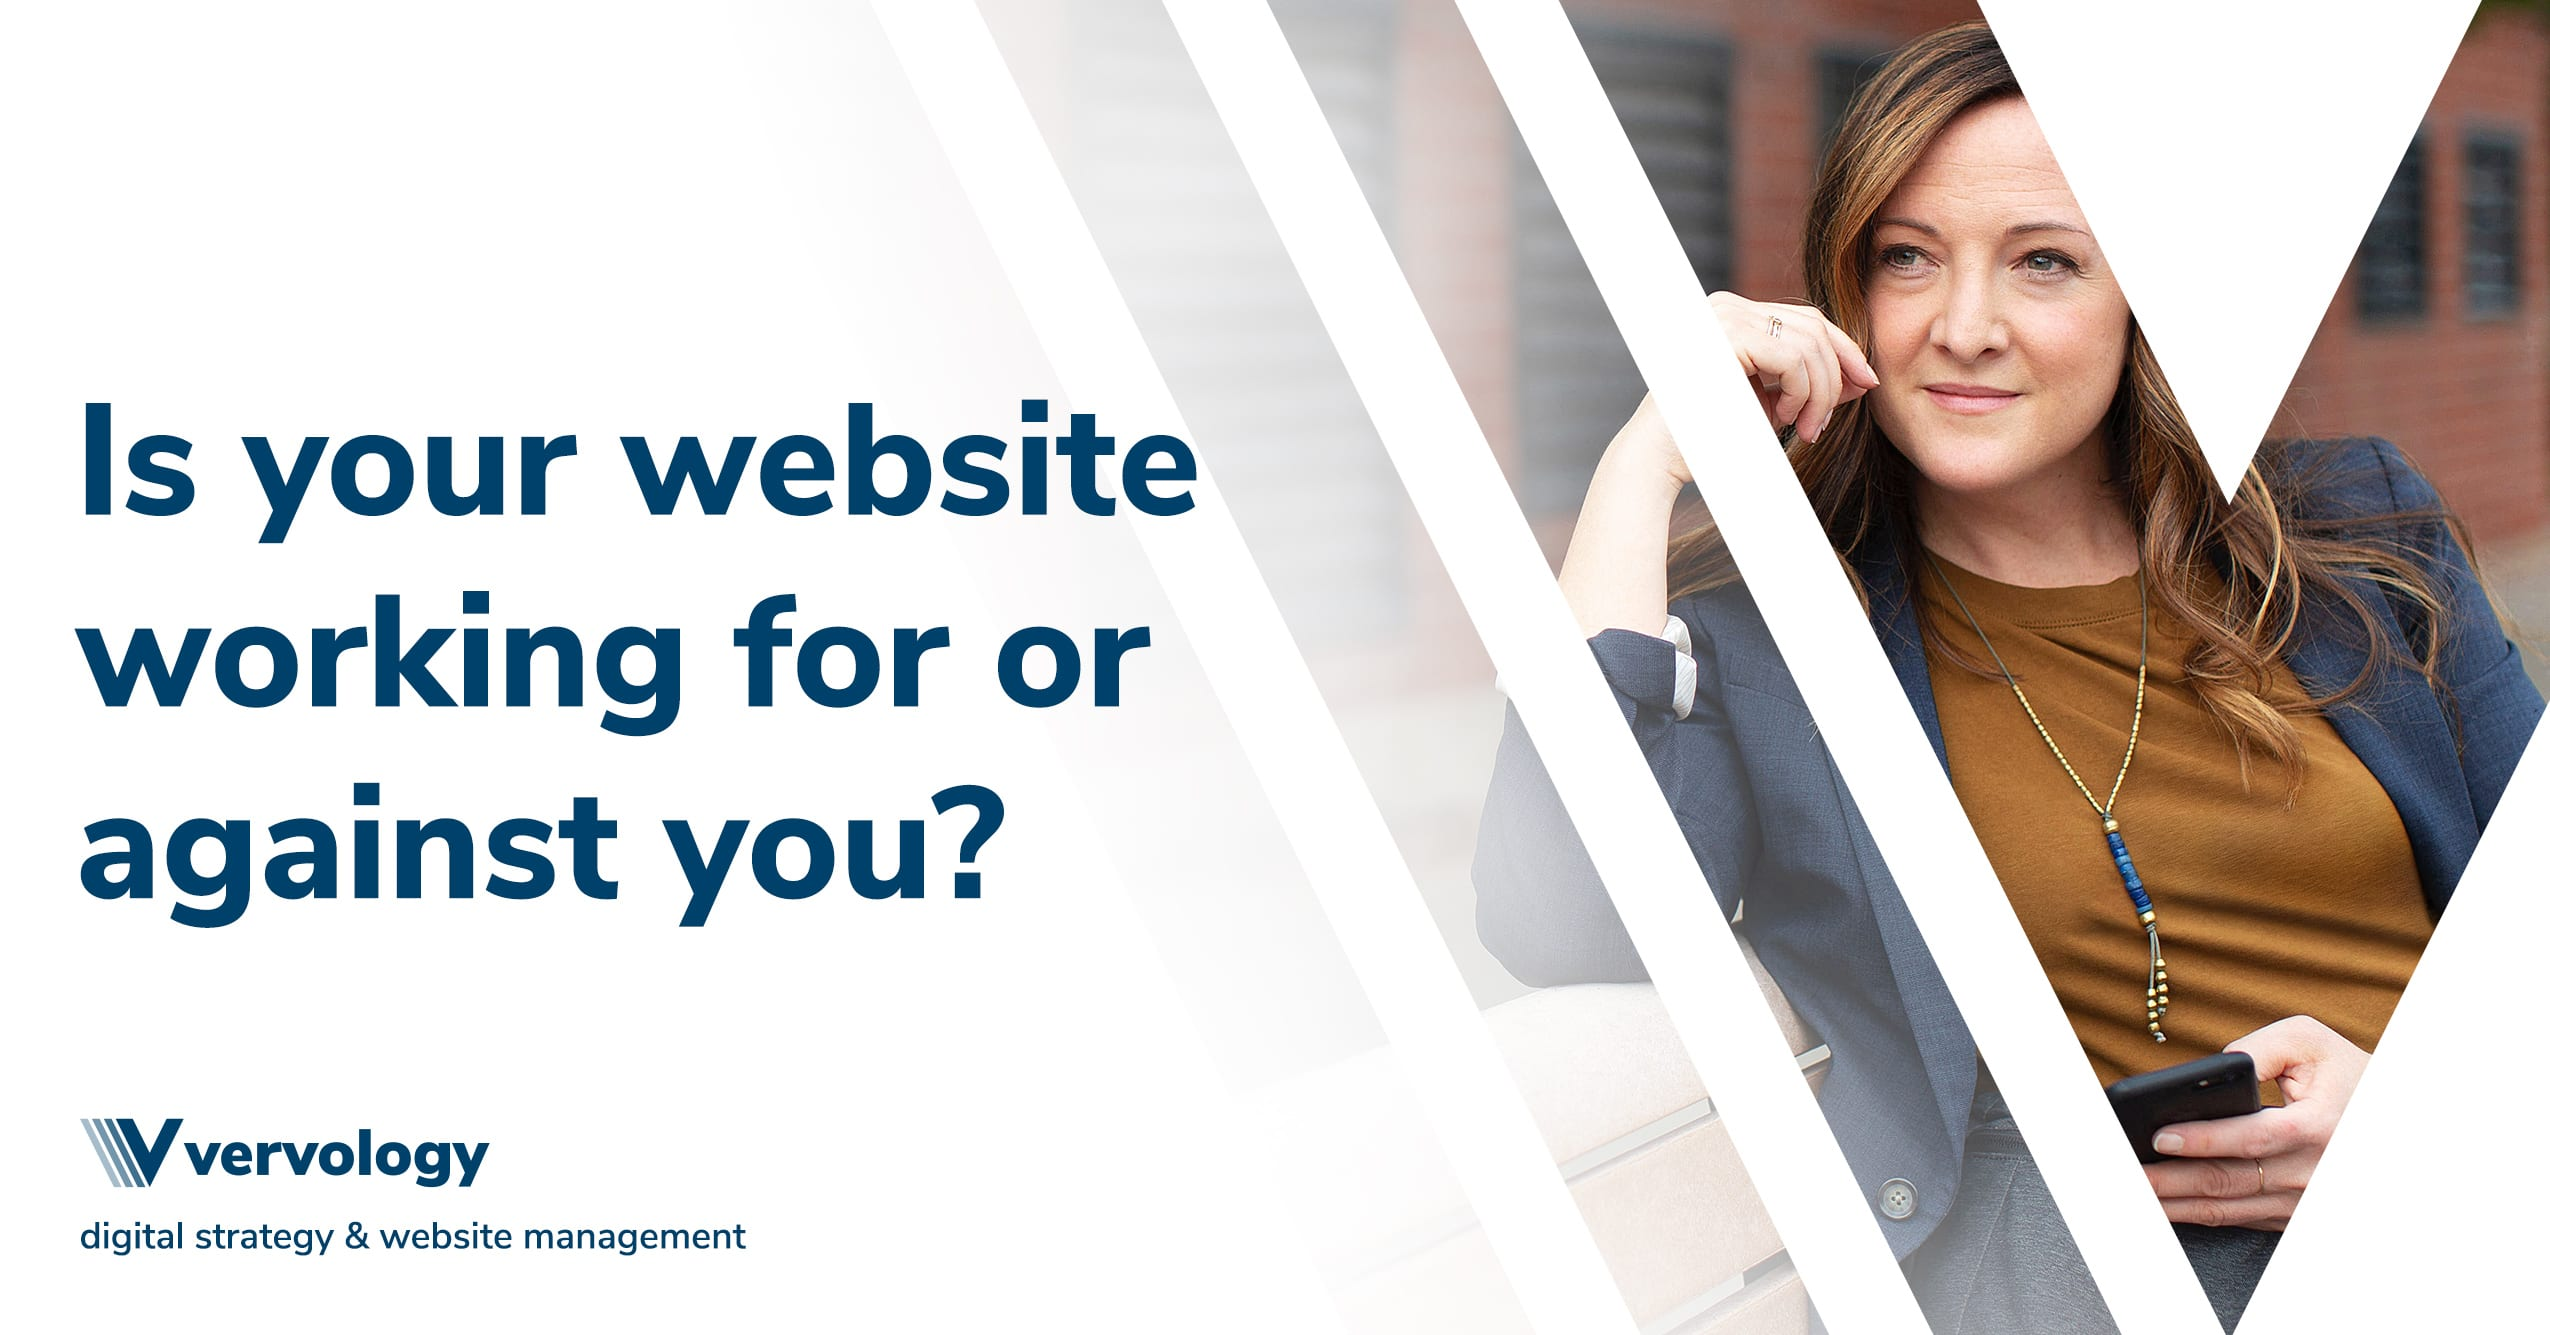 Is your website working for or against you?